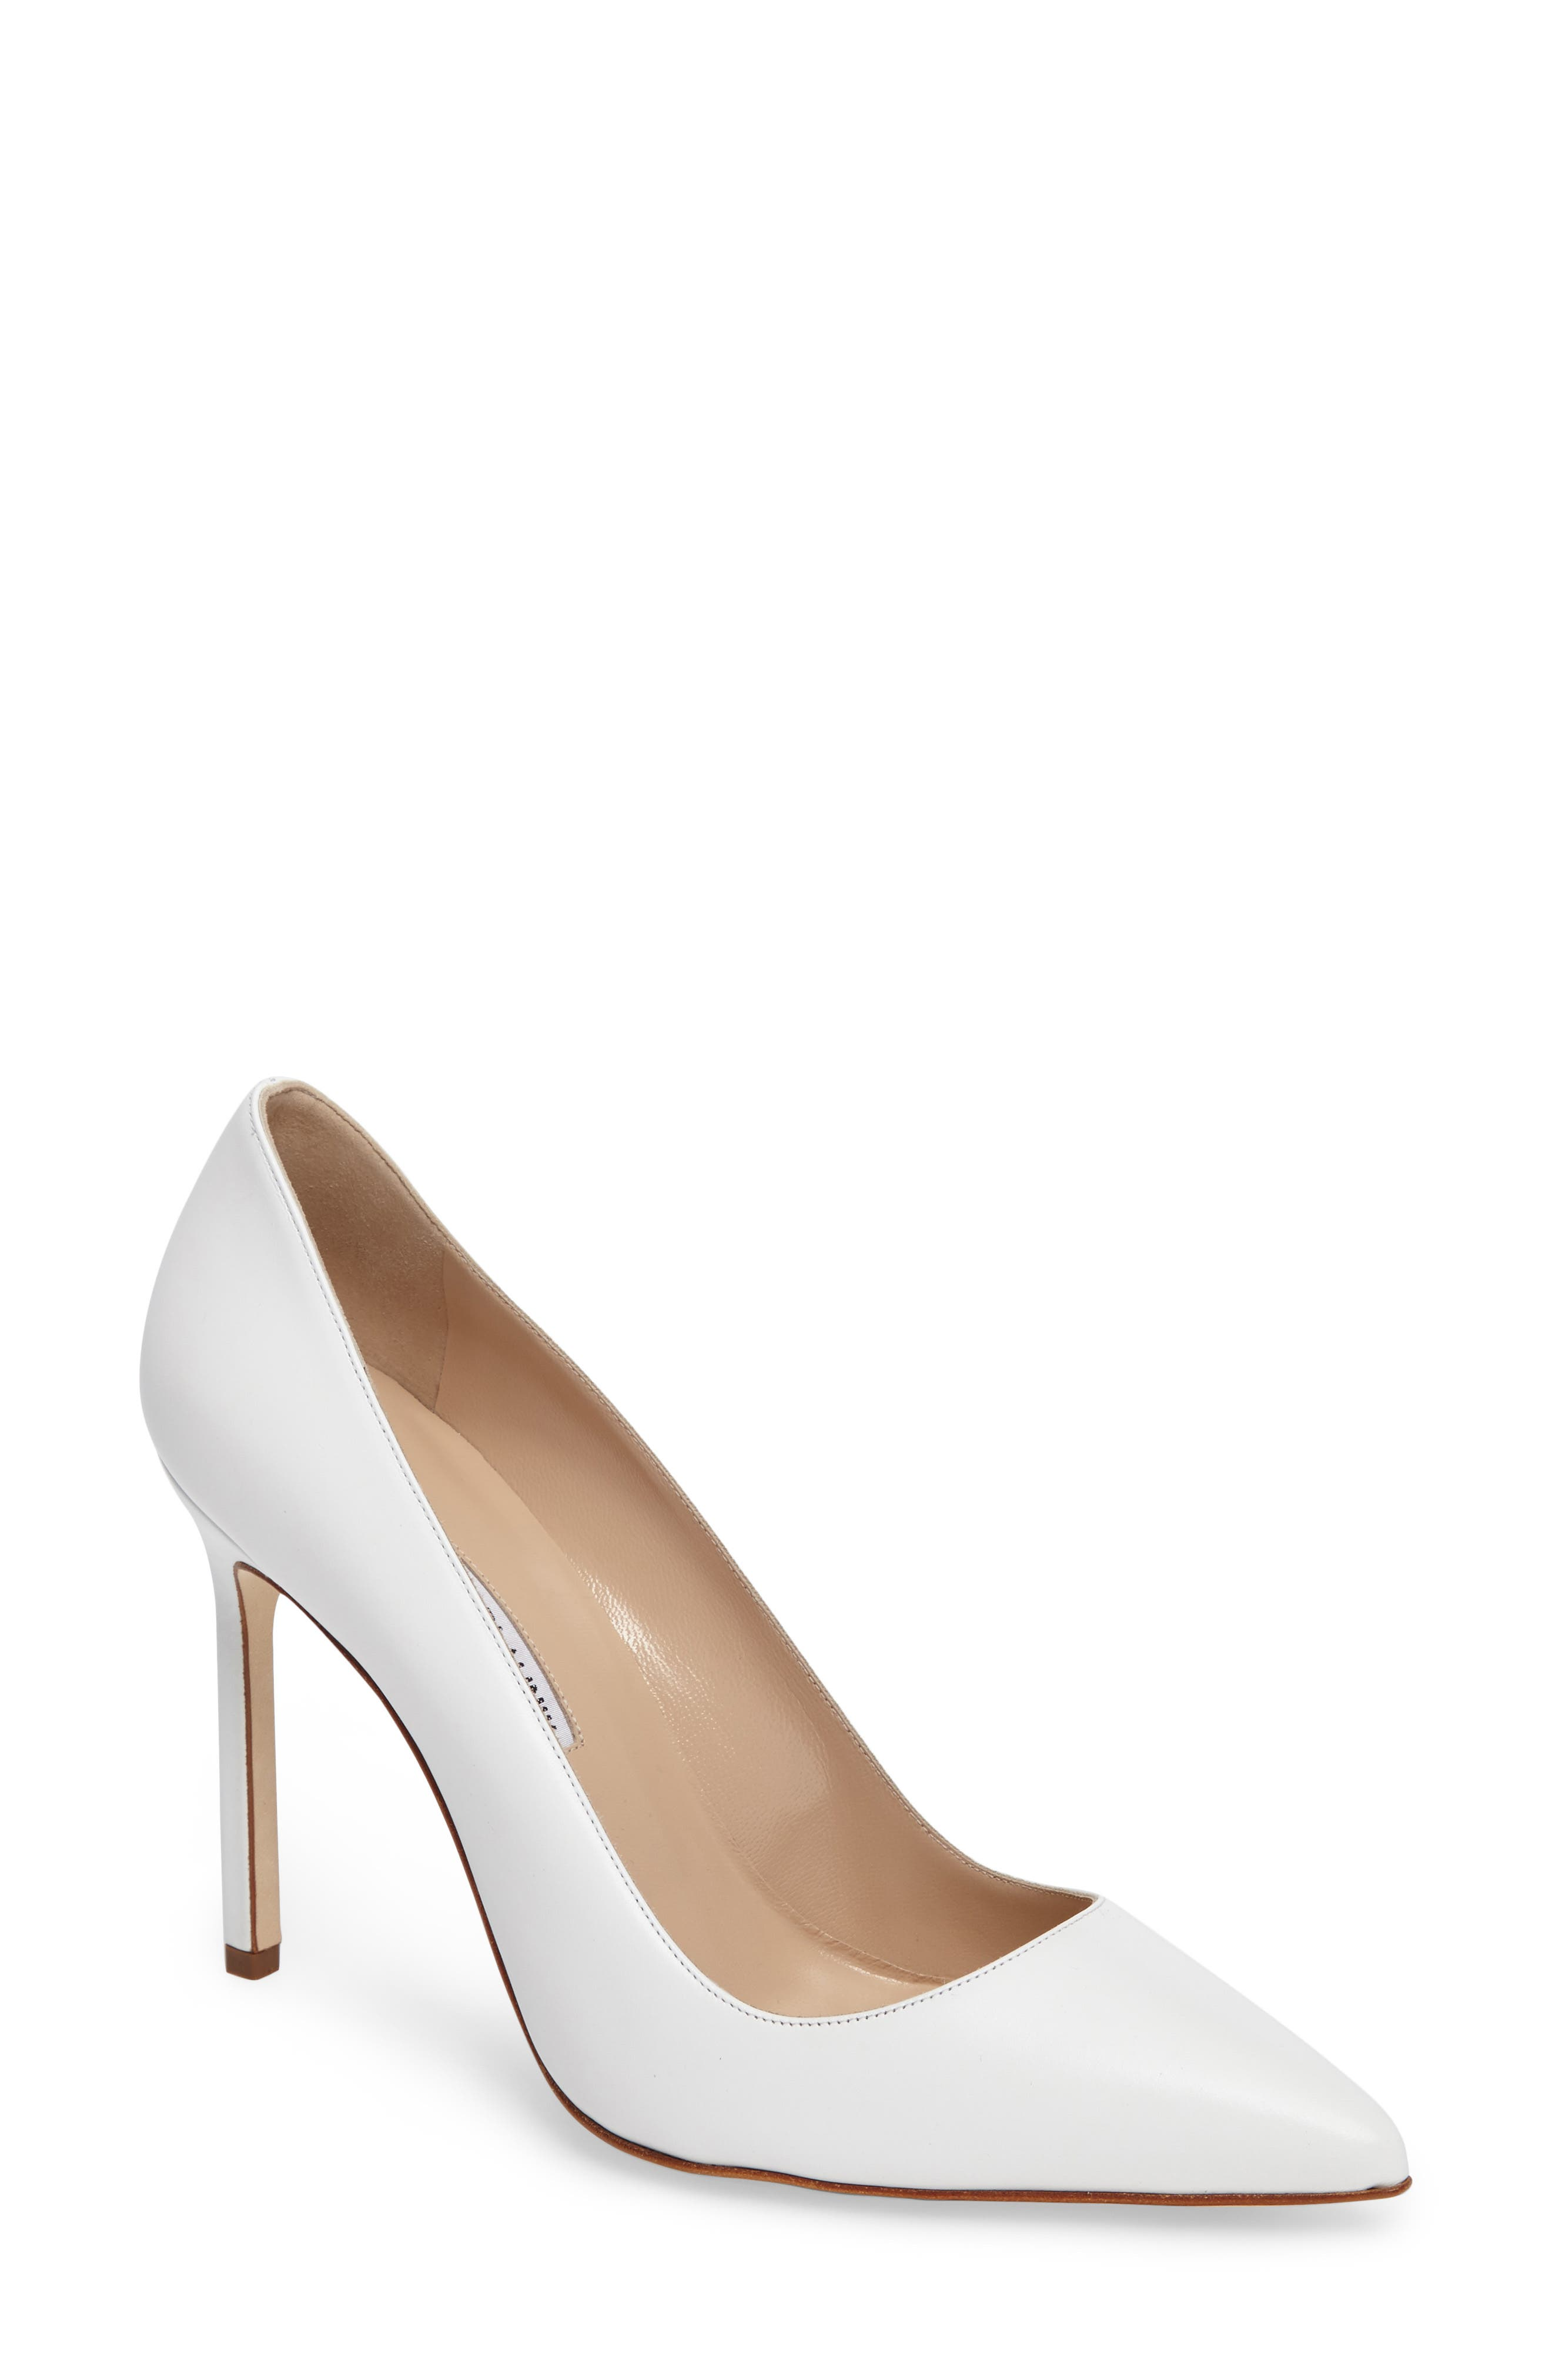 Main Image - Manolo Blahnik 'BB' Pointy Toe Pump (Women)